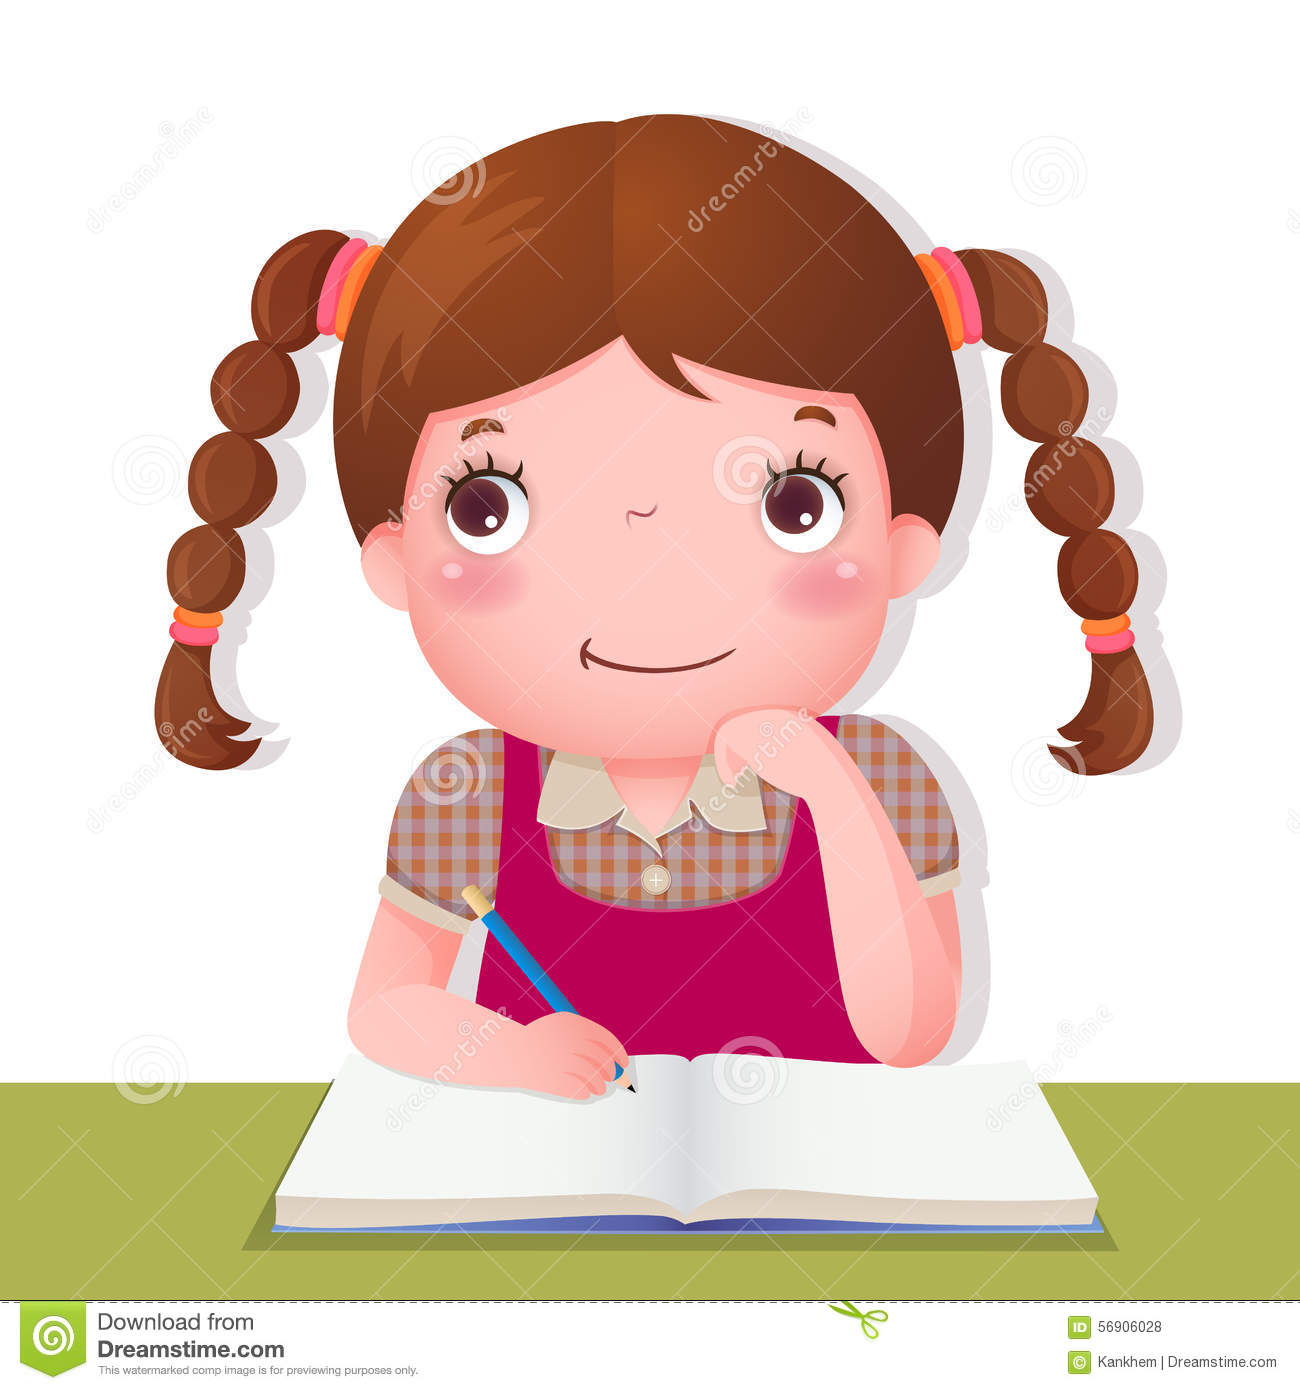 Cute girl thinking while working on her school project